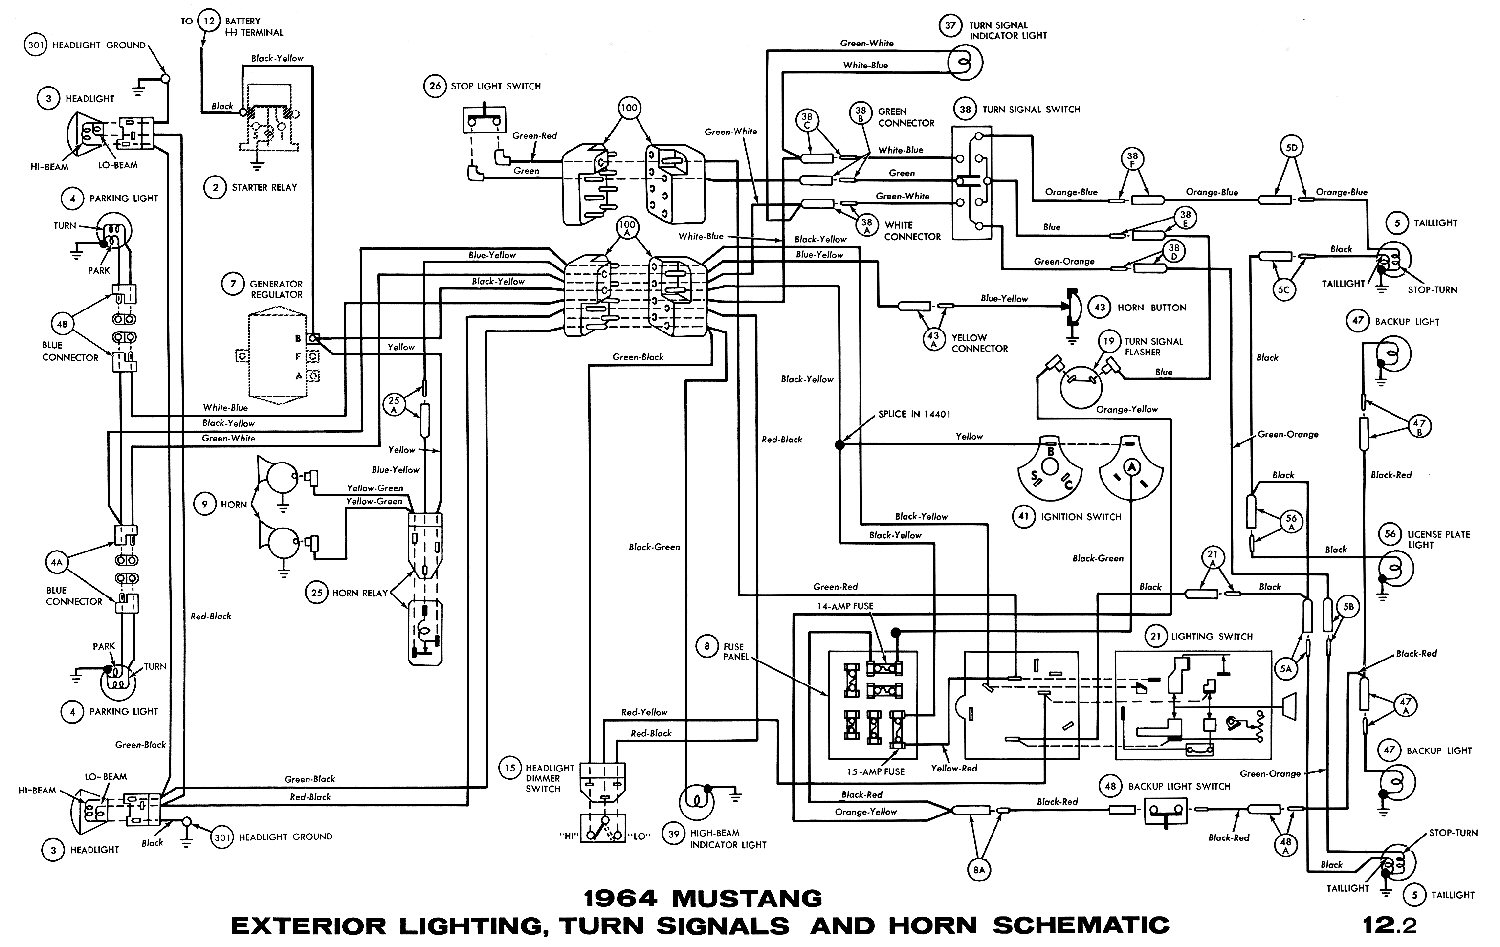 1964i 1964 mustang wiring diagrams average joe restoration Chevy Ignition Wiring Diagram at crackthecode.co